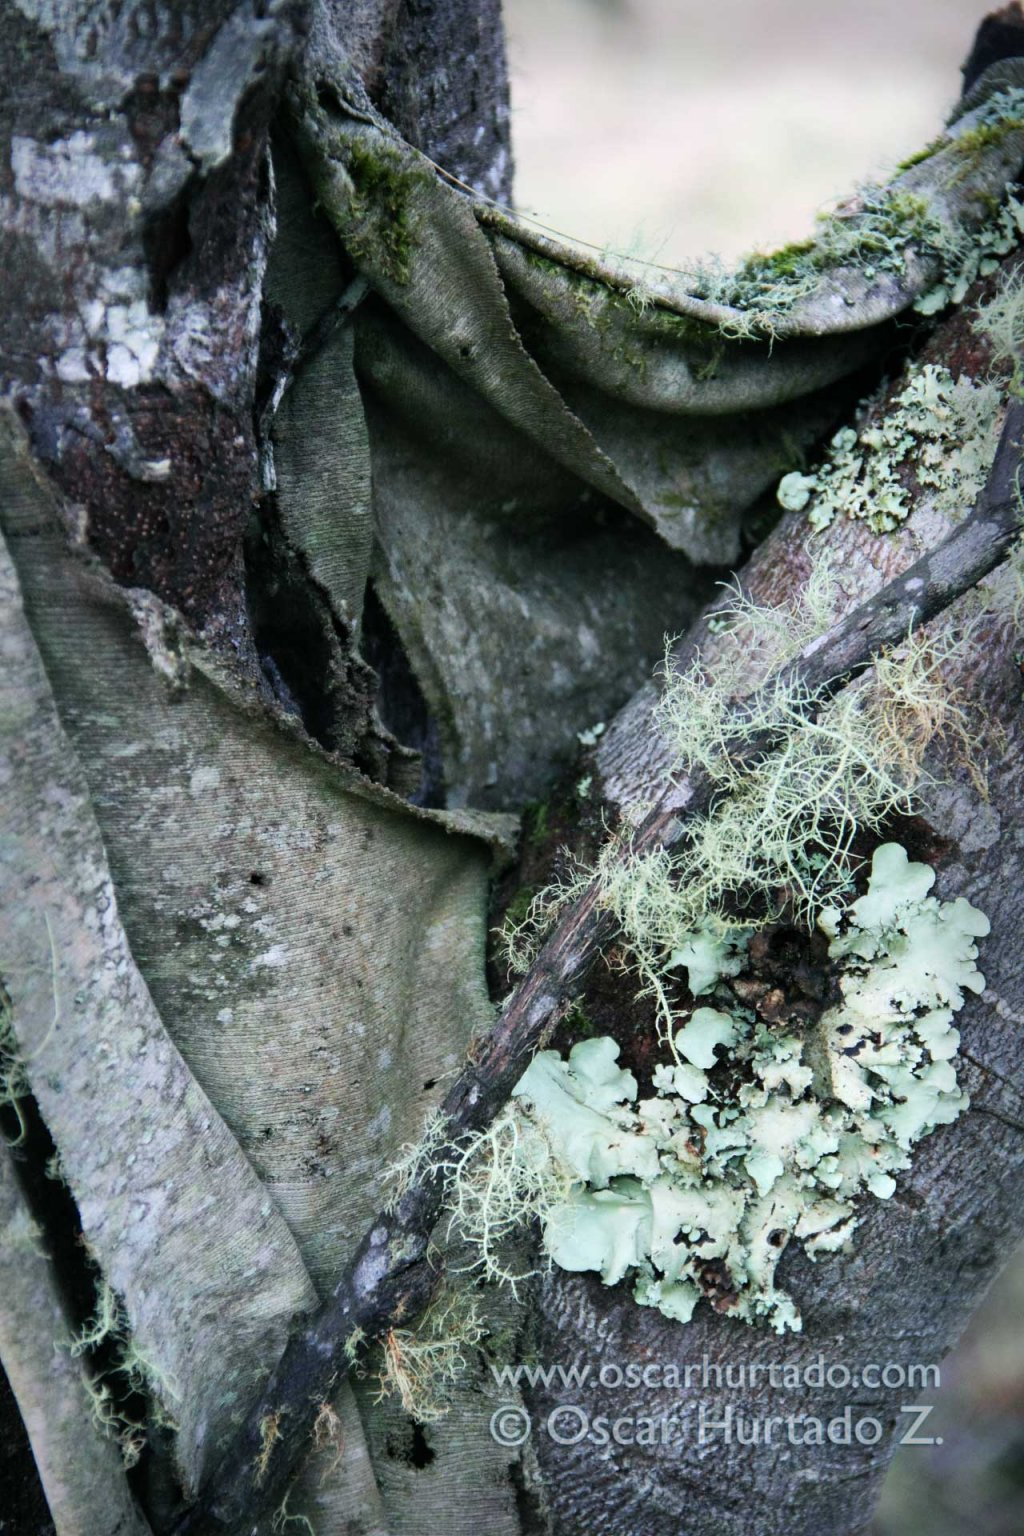 In the realms of nature - Natural and decaying discoveries into the wild